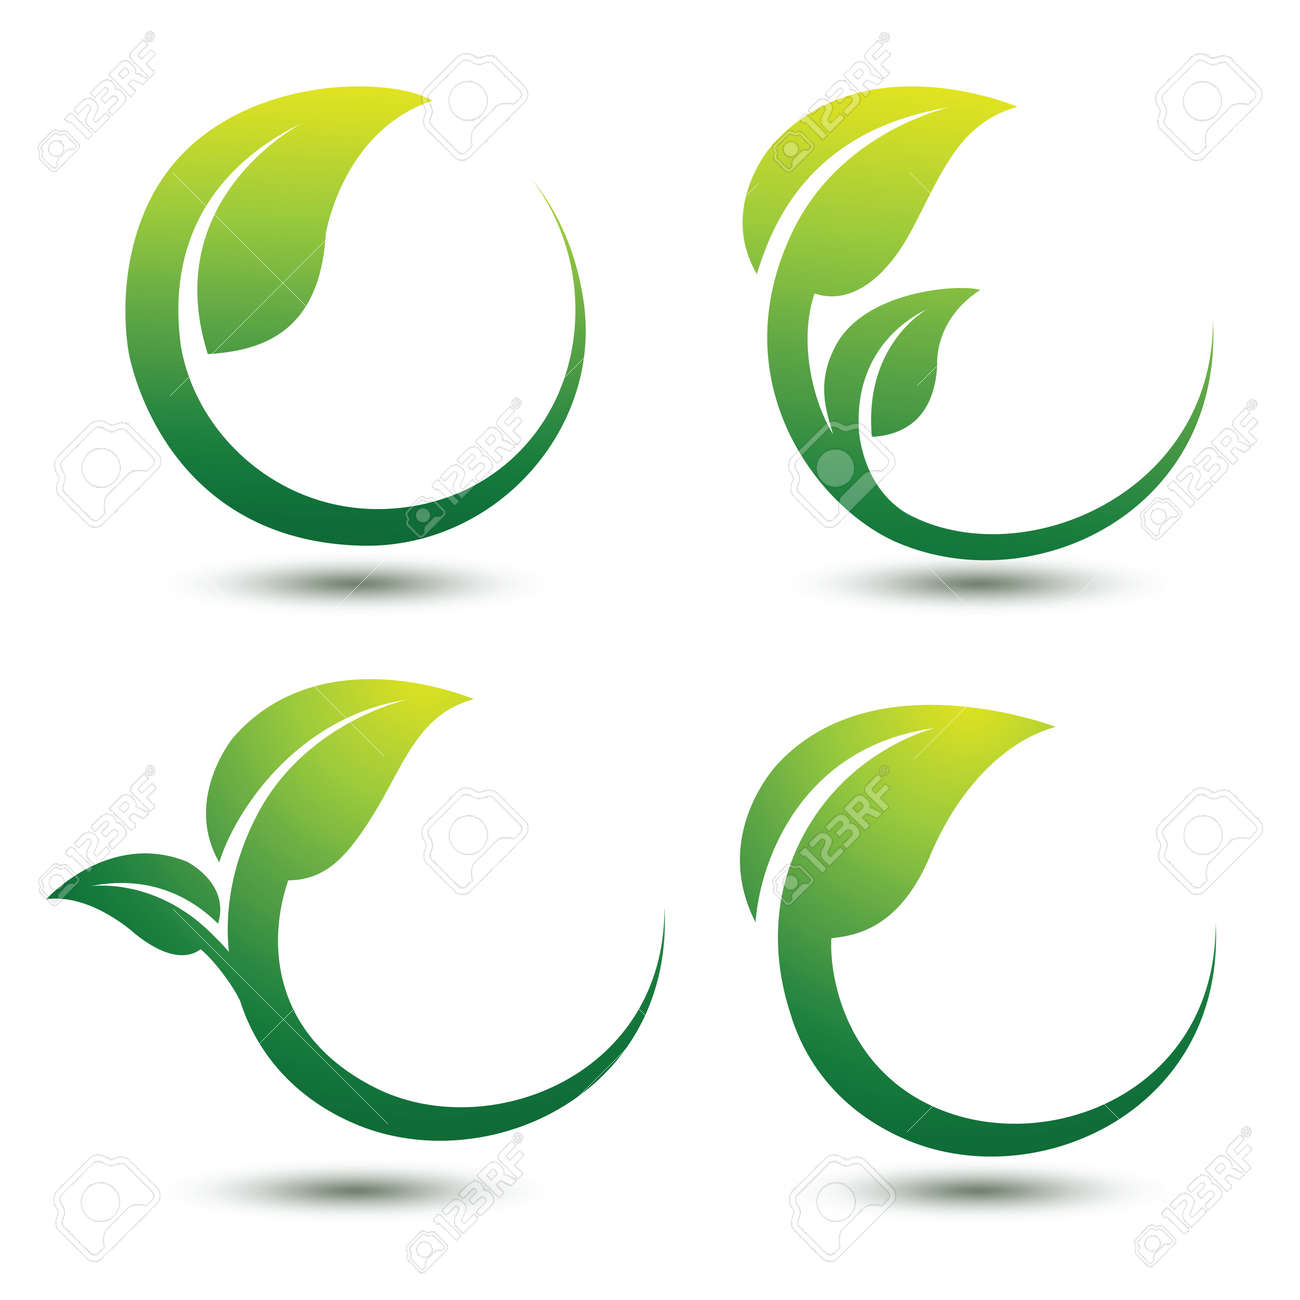 Green labels concept with leaves,vector illustration Stock Vector - 46186078